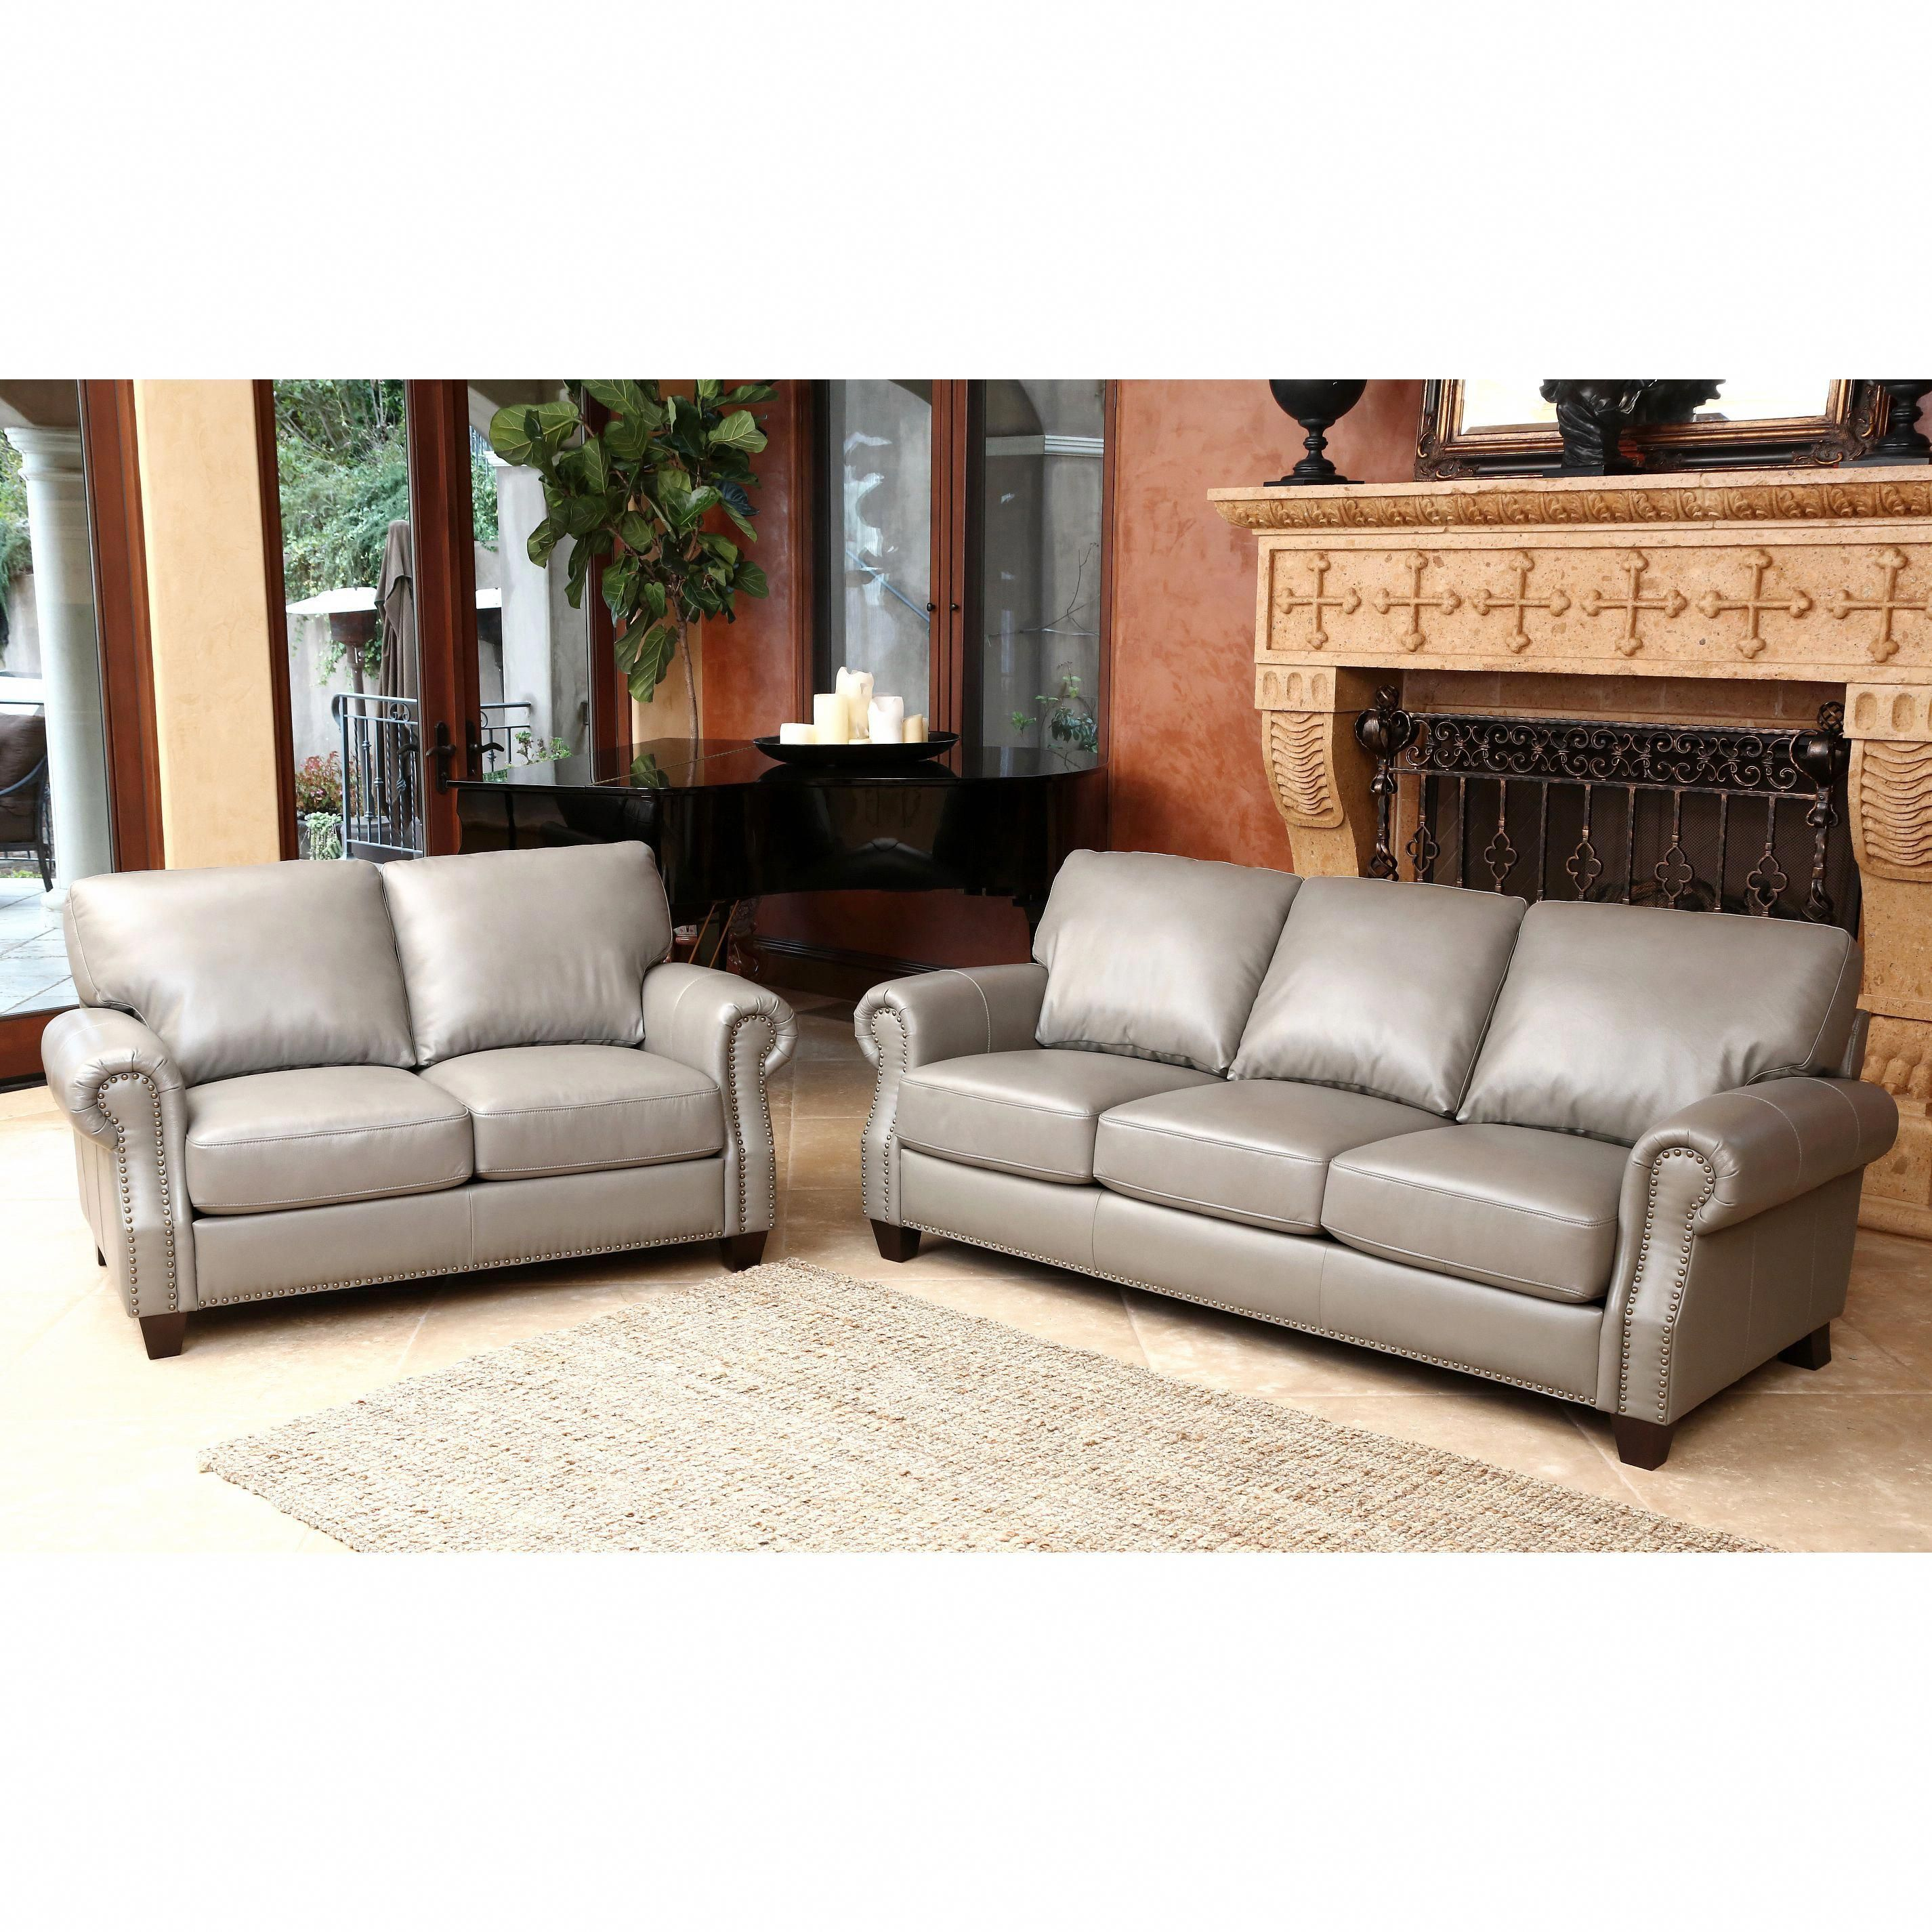 Grey Top Grain Leather Gives This Abbyson Living Landon Loveseat And Sofa Set A Refine Leather Sofa And Loveseat Top Grain Leather Sofa Leather Living Room Set